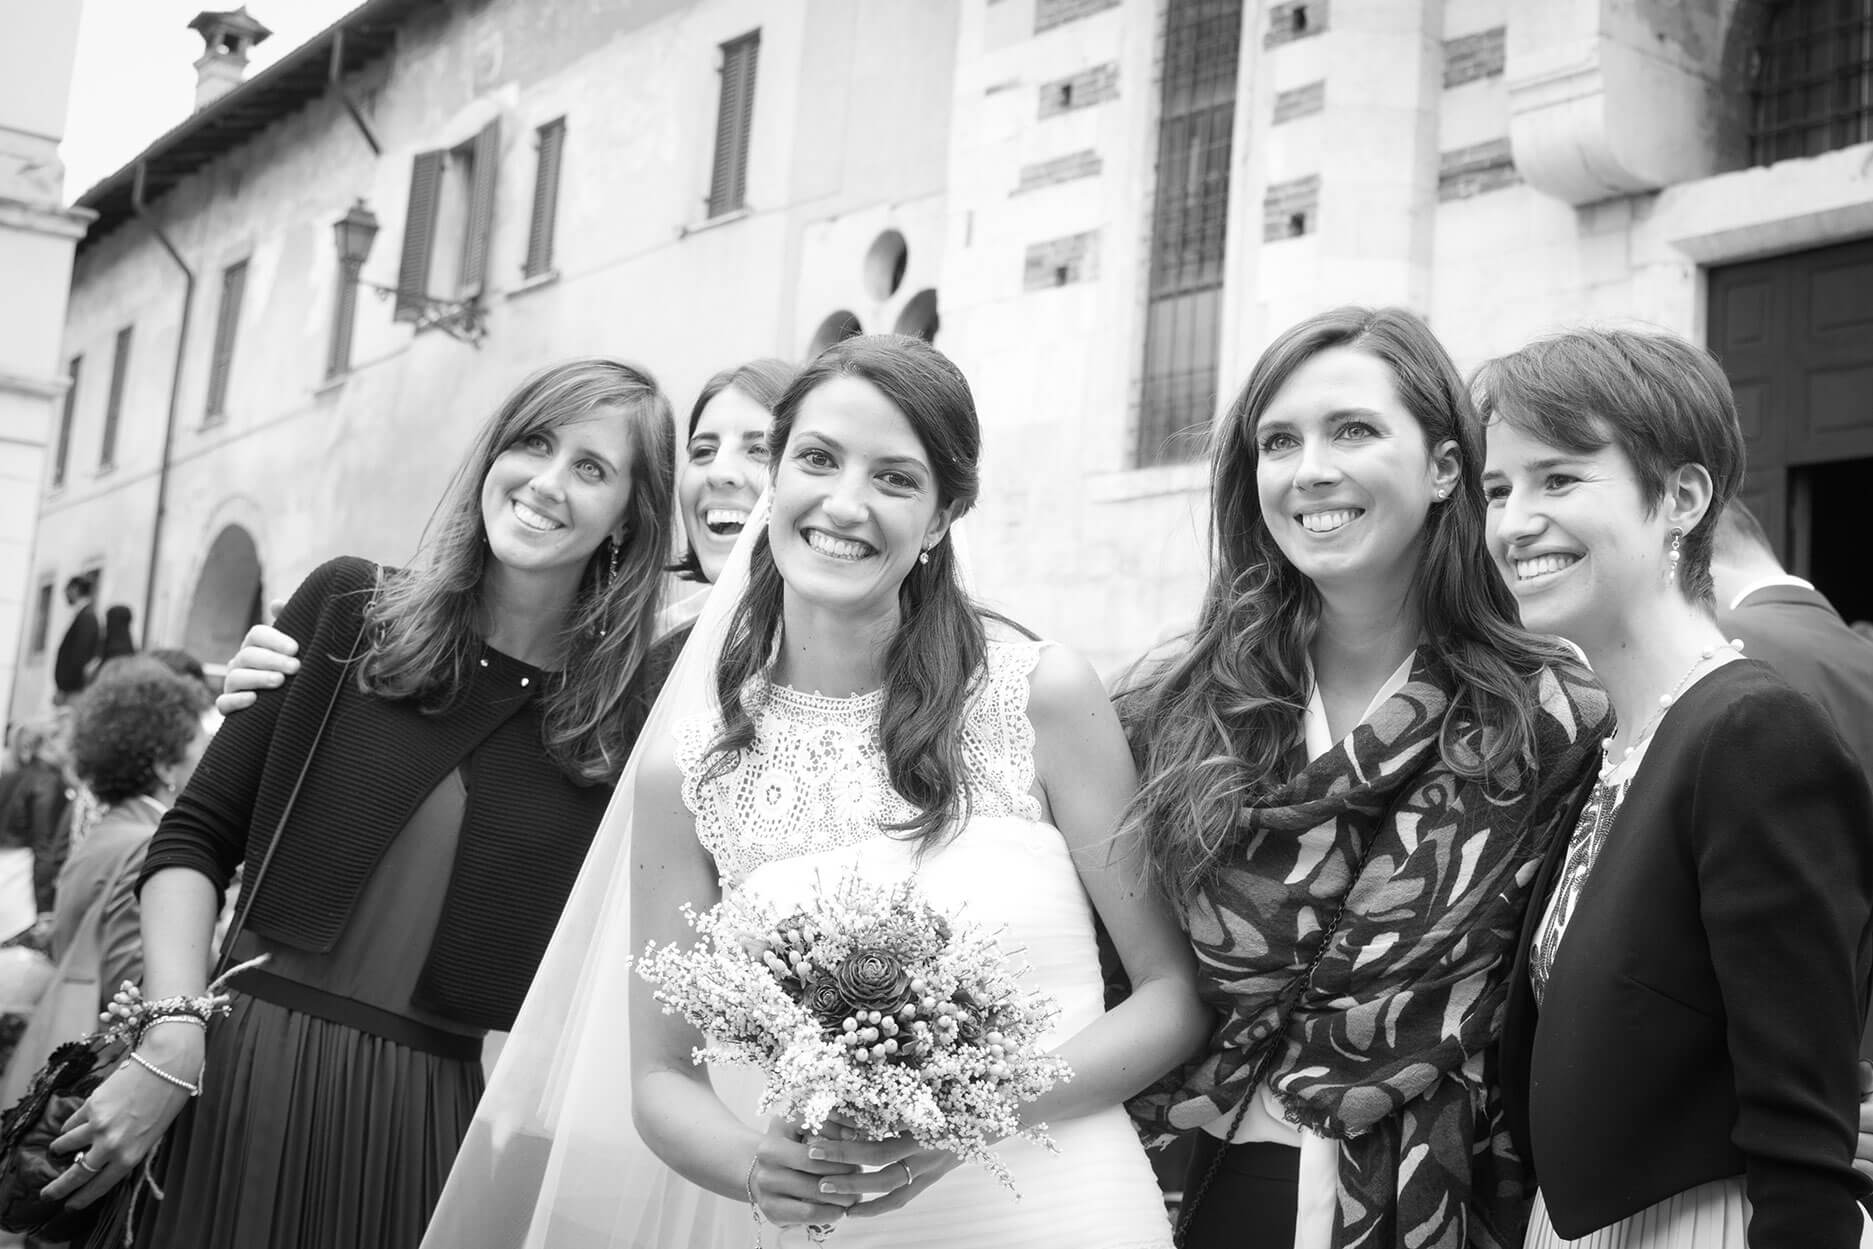 Francesca-Ferrati-WeddingIMG_0928